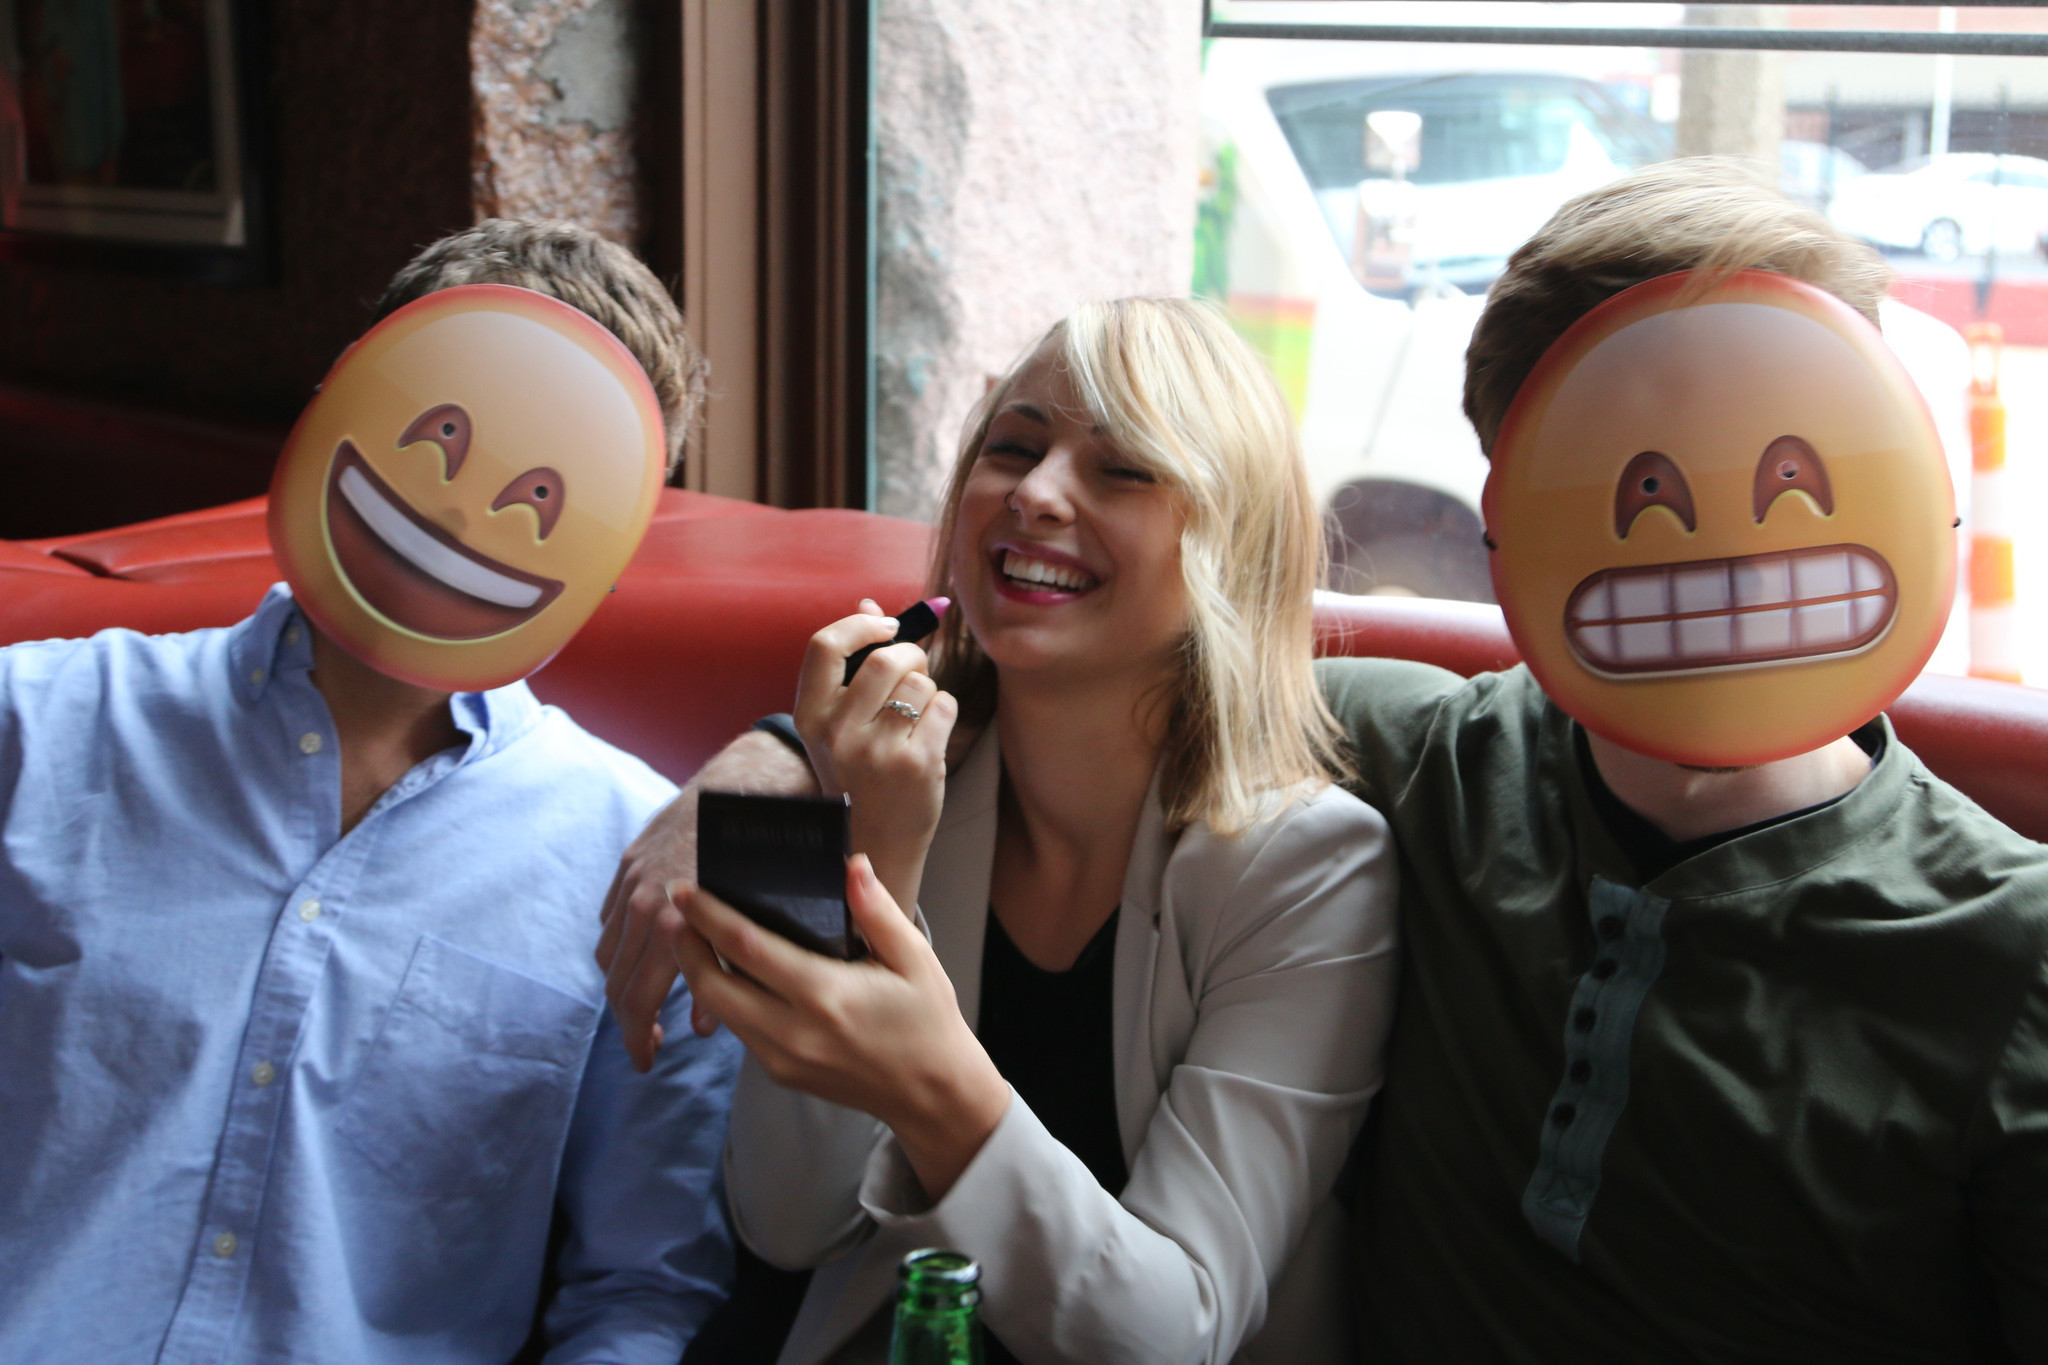 emoji mask. u201c  sc 1 st  HuffPost & These Emoji Masks Are The Best Halloween Costumes $5 Can Buy | HuffPost